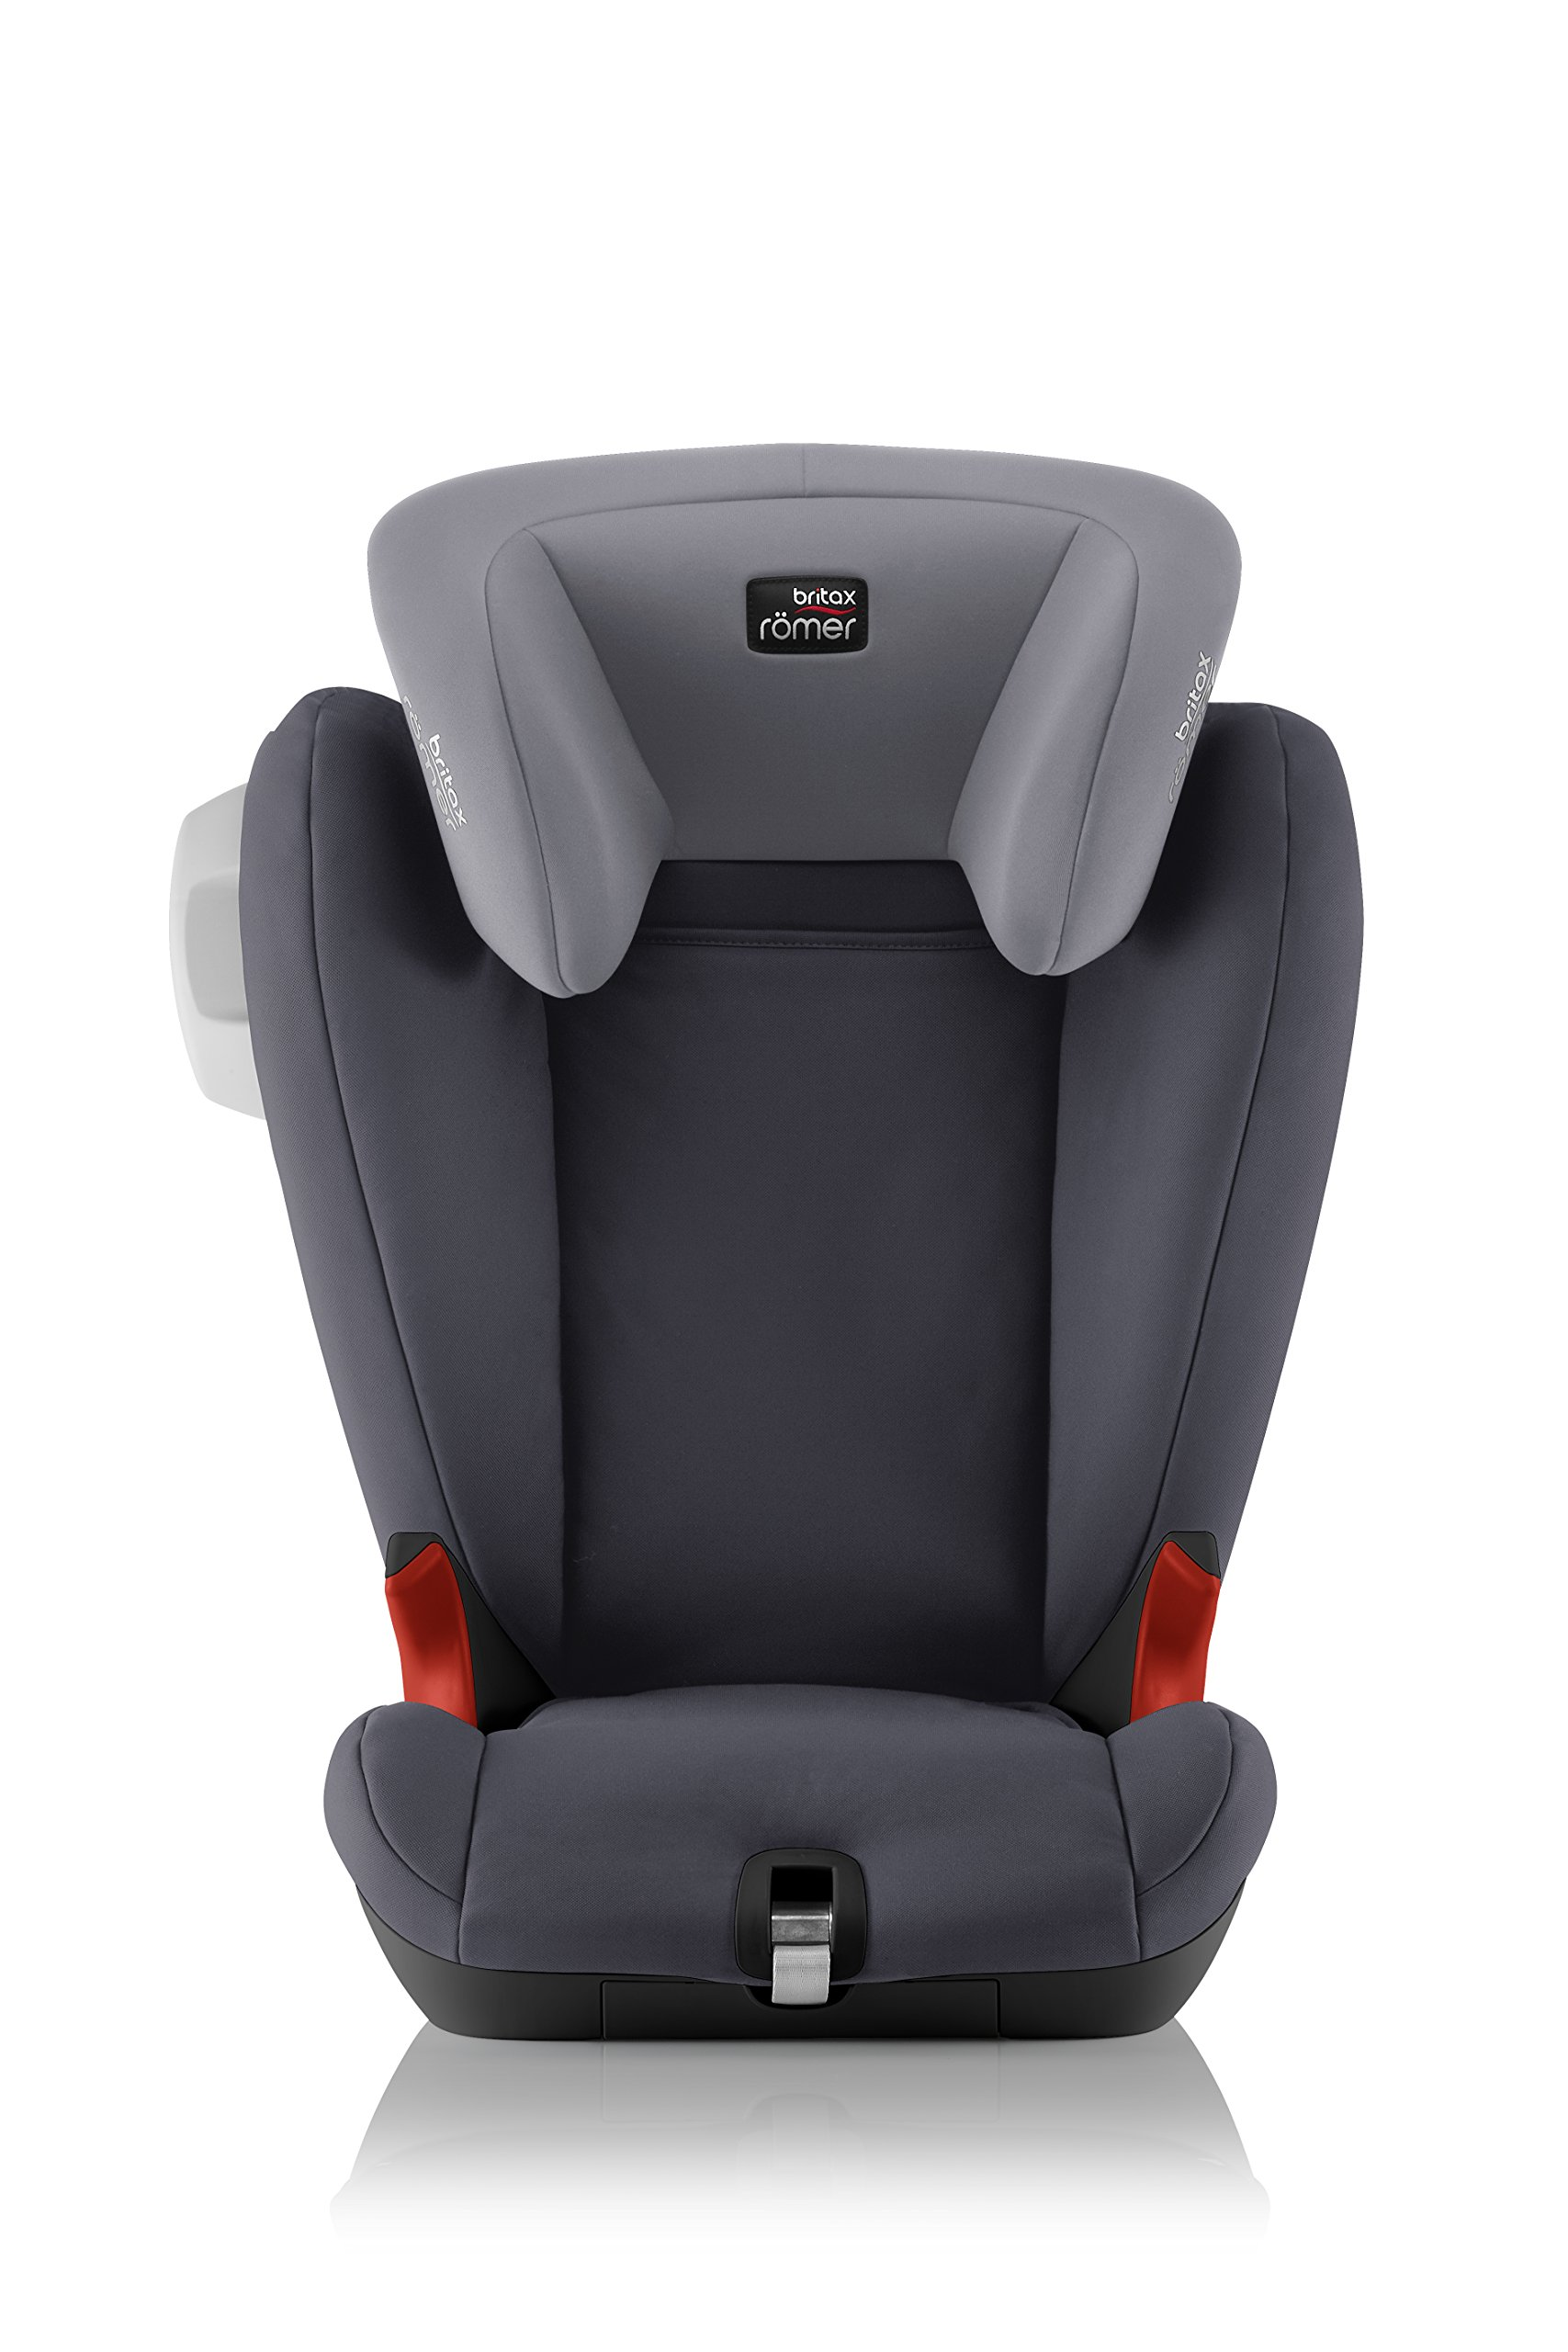 Britax Römer KIDFIX SL SICT BLACK SERIES Group 2-3 (15-36kg) Car Seat - Storm Grey Britax Römer Side impact protection - deep, softly padded side wings and sict technology, removable to use only on the side closest to the door Simple installation - soft-latch isofit system Misuse limiting design - intuitively positioned seat belt guides 2